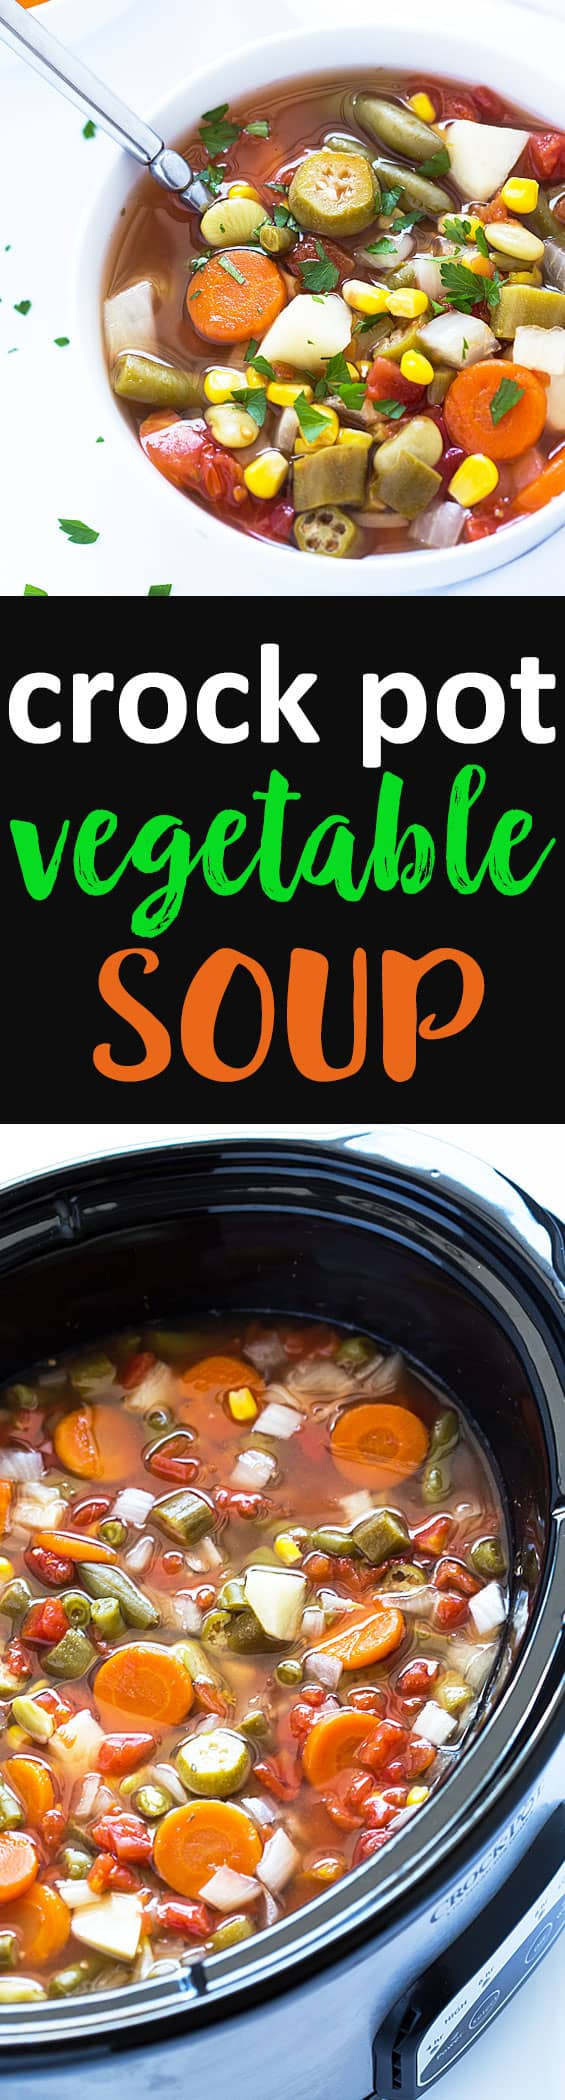 Easy Crock Pot Vegetable Soup - Just 10 minutes prep time!